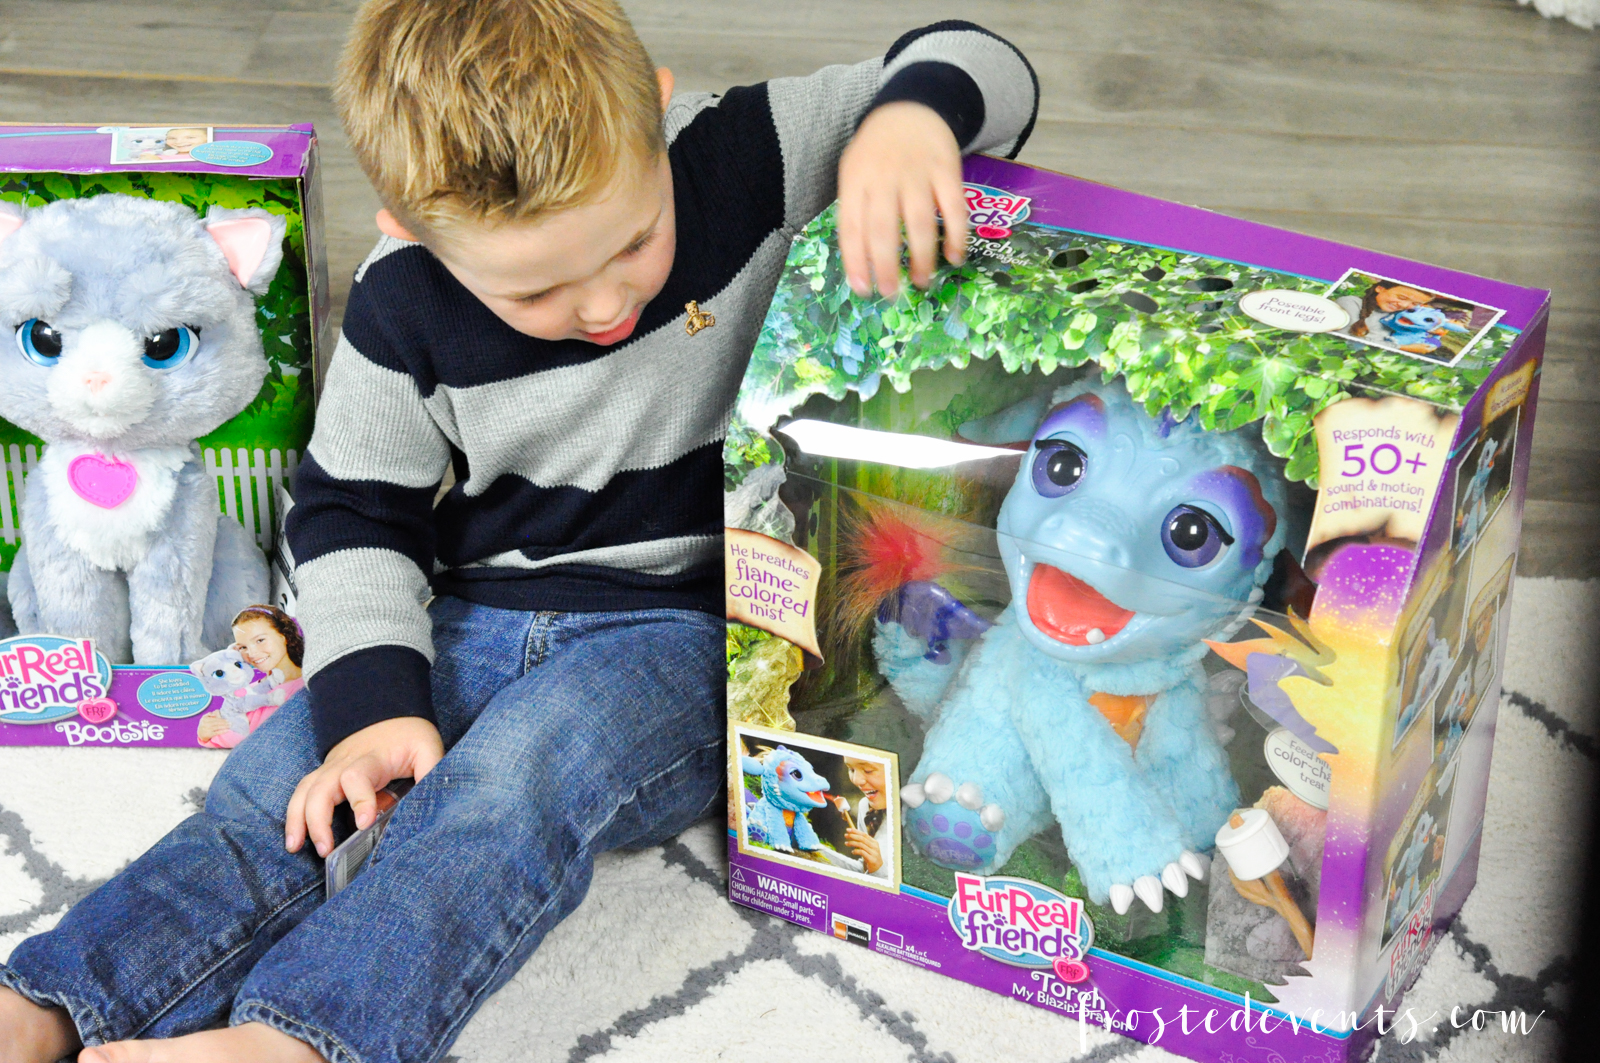 Christmas Toys For Boys : The hottest toys kids want this christmas do some cool tricks